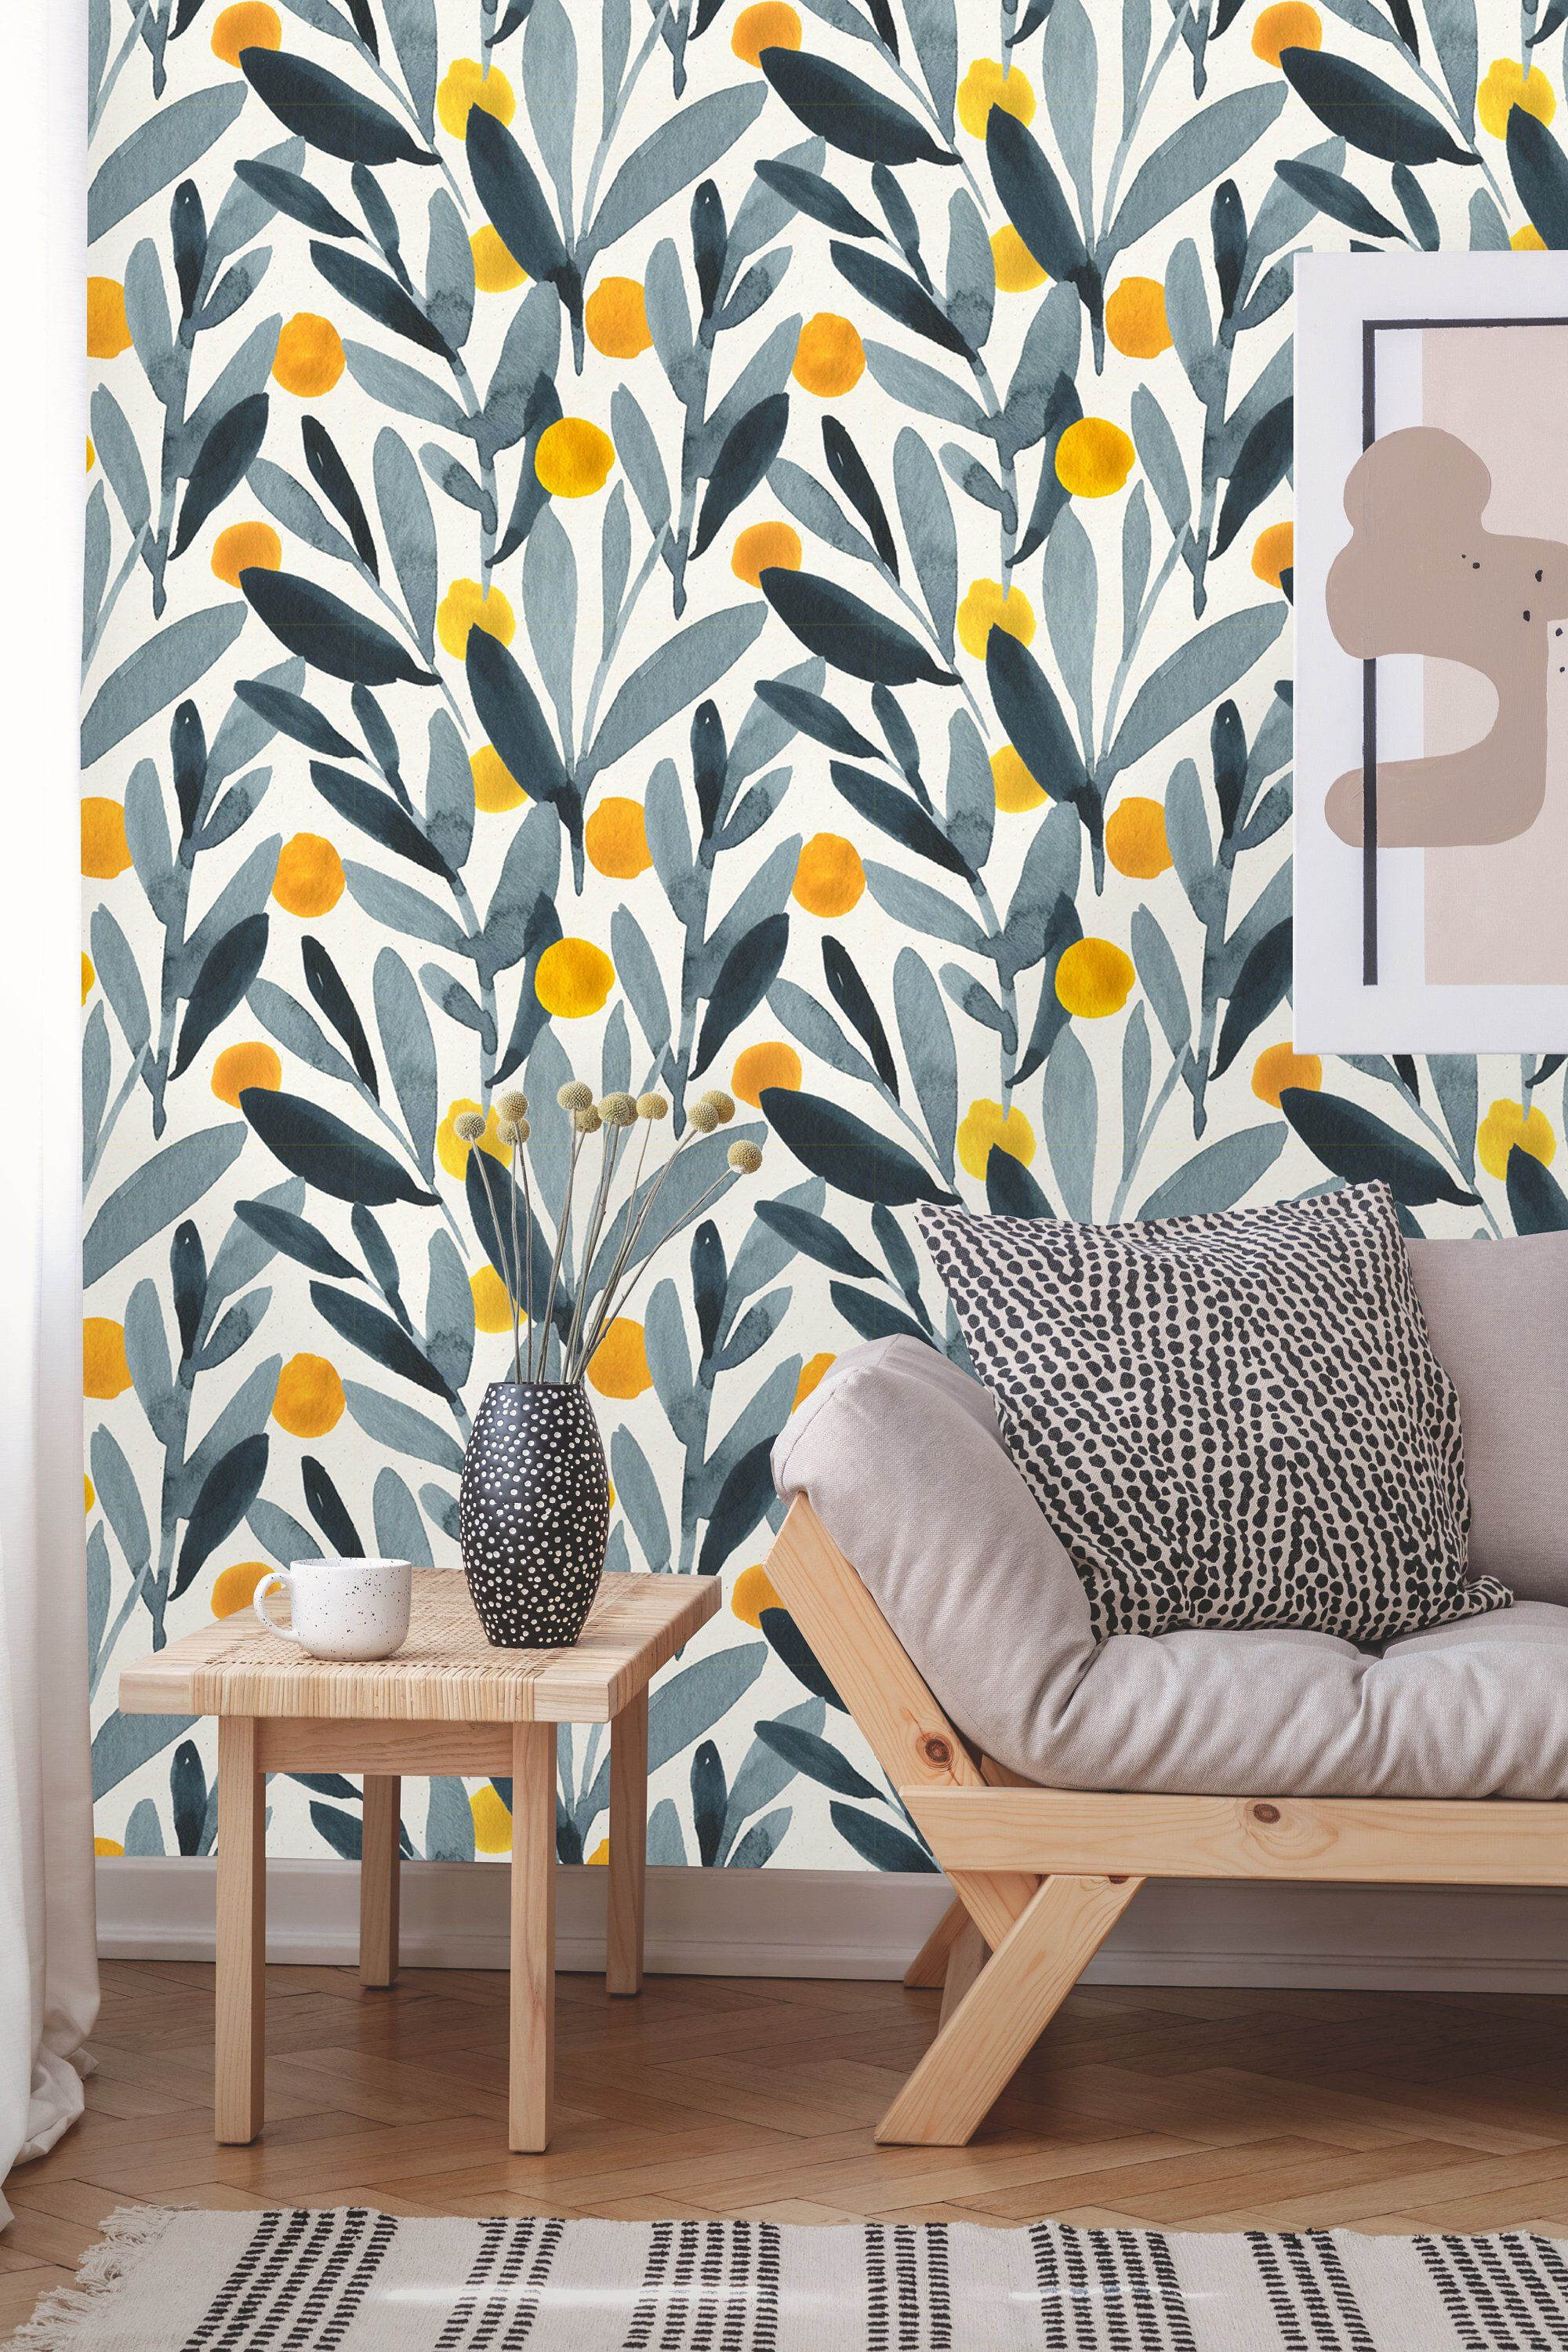 Removable Wallpaper Peel And Stick Leaves Wallpaper Self Etsy In 2020 Watercolor Wallpaper Removable Wallpaper Floral Wallpaper